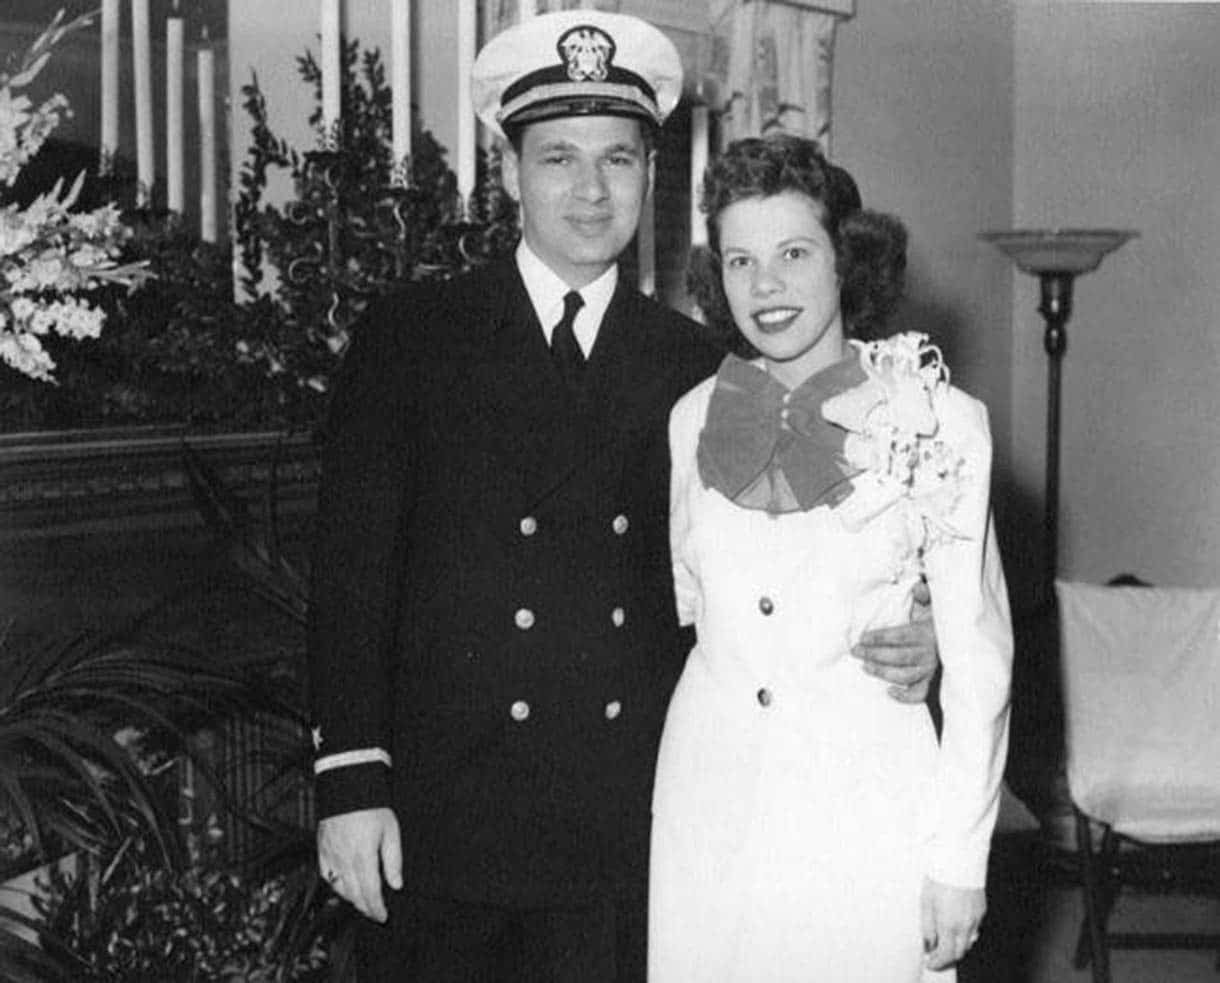 Elliot and Eileen Schubert at their military wedding in 1945